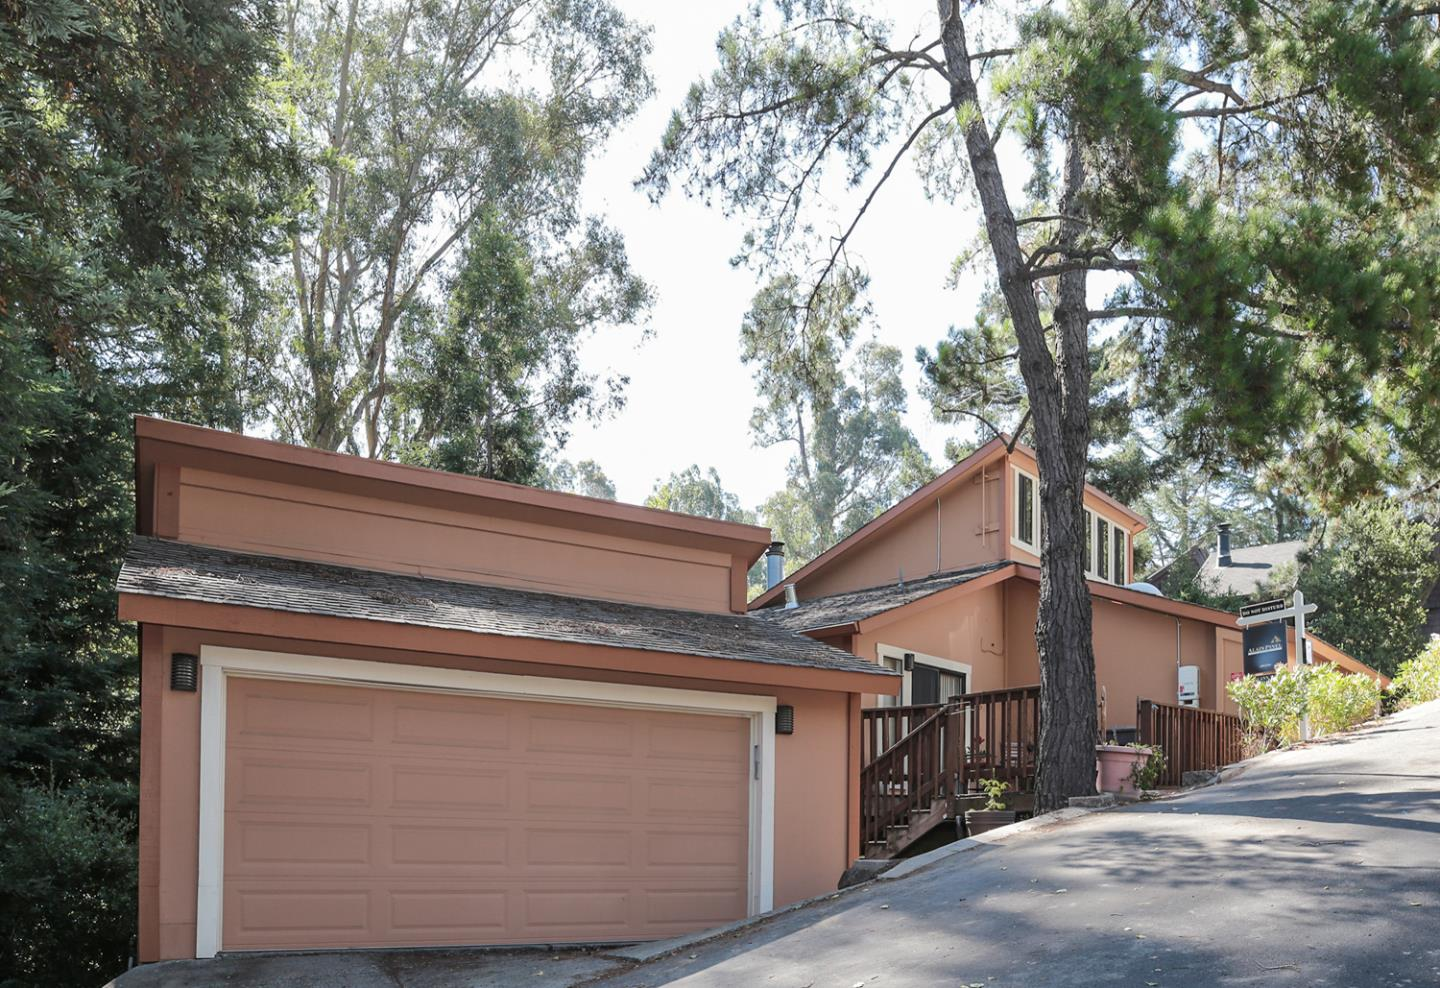 178 College Avenue, LOS GATOS, CA 95030